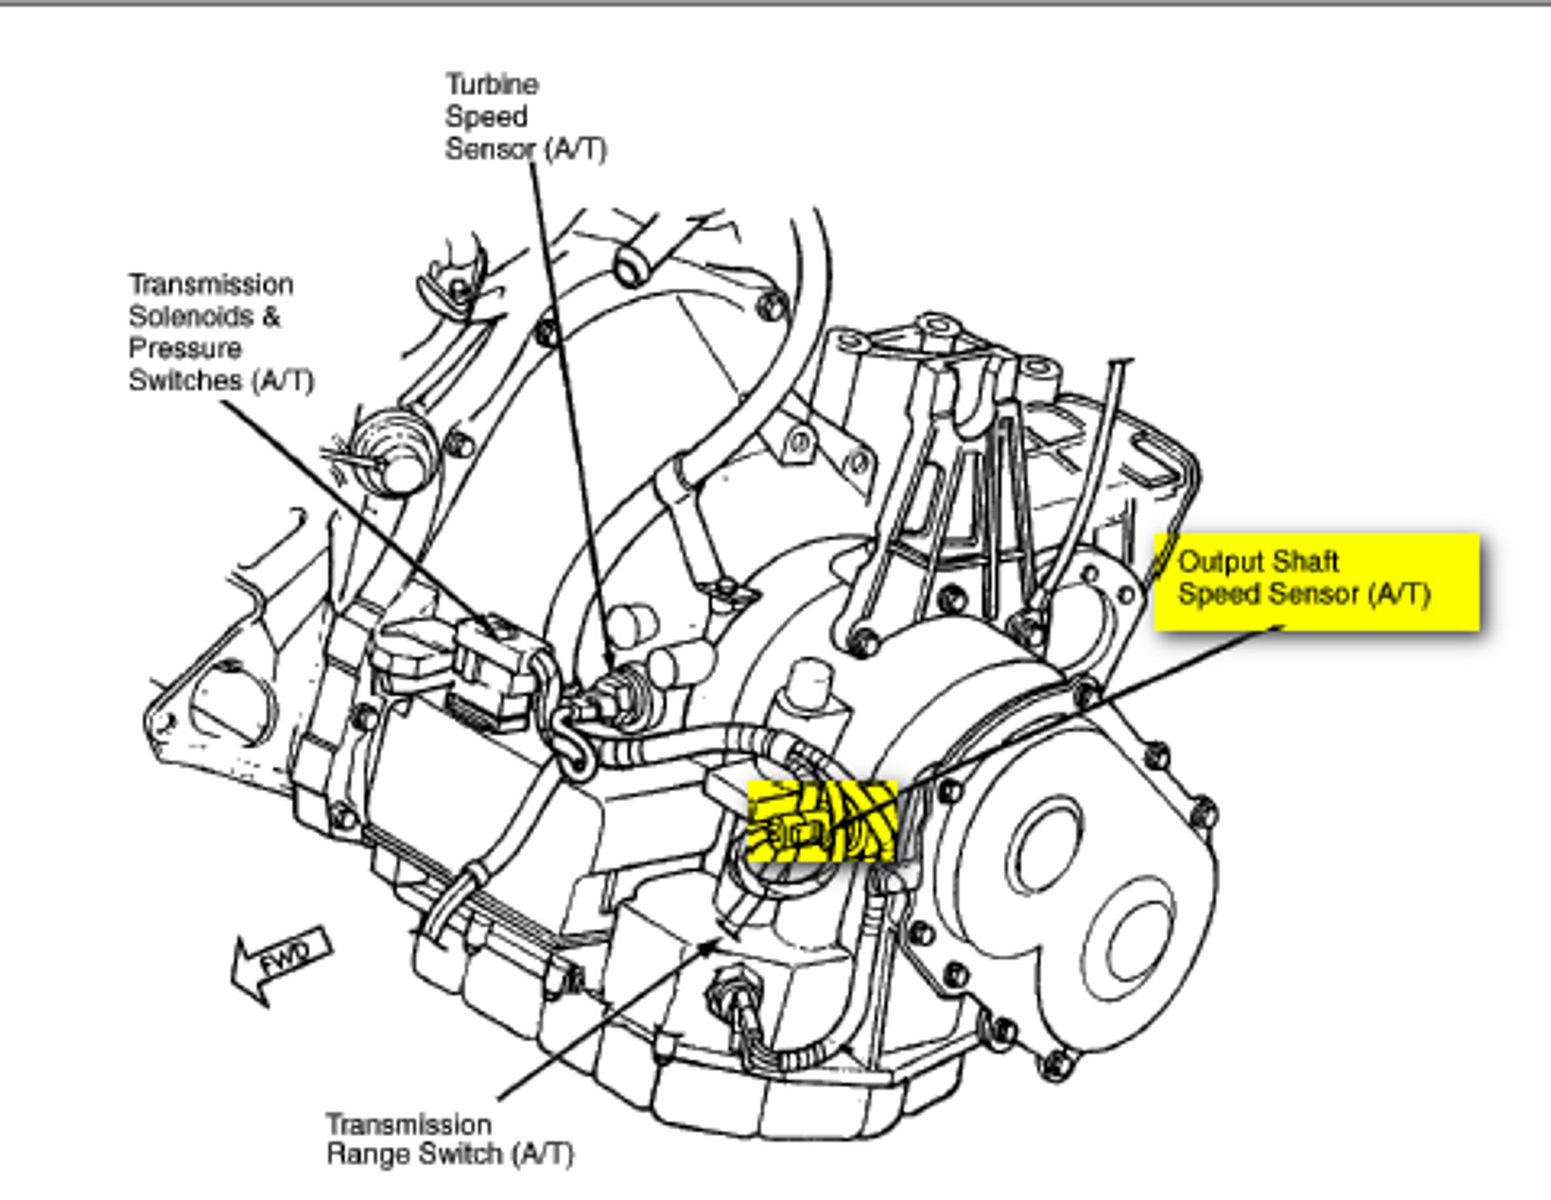 Discussion C1698_ds556905 on 2007 Chevy Cobalt Wiring Diagram